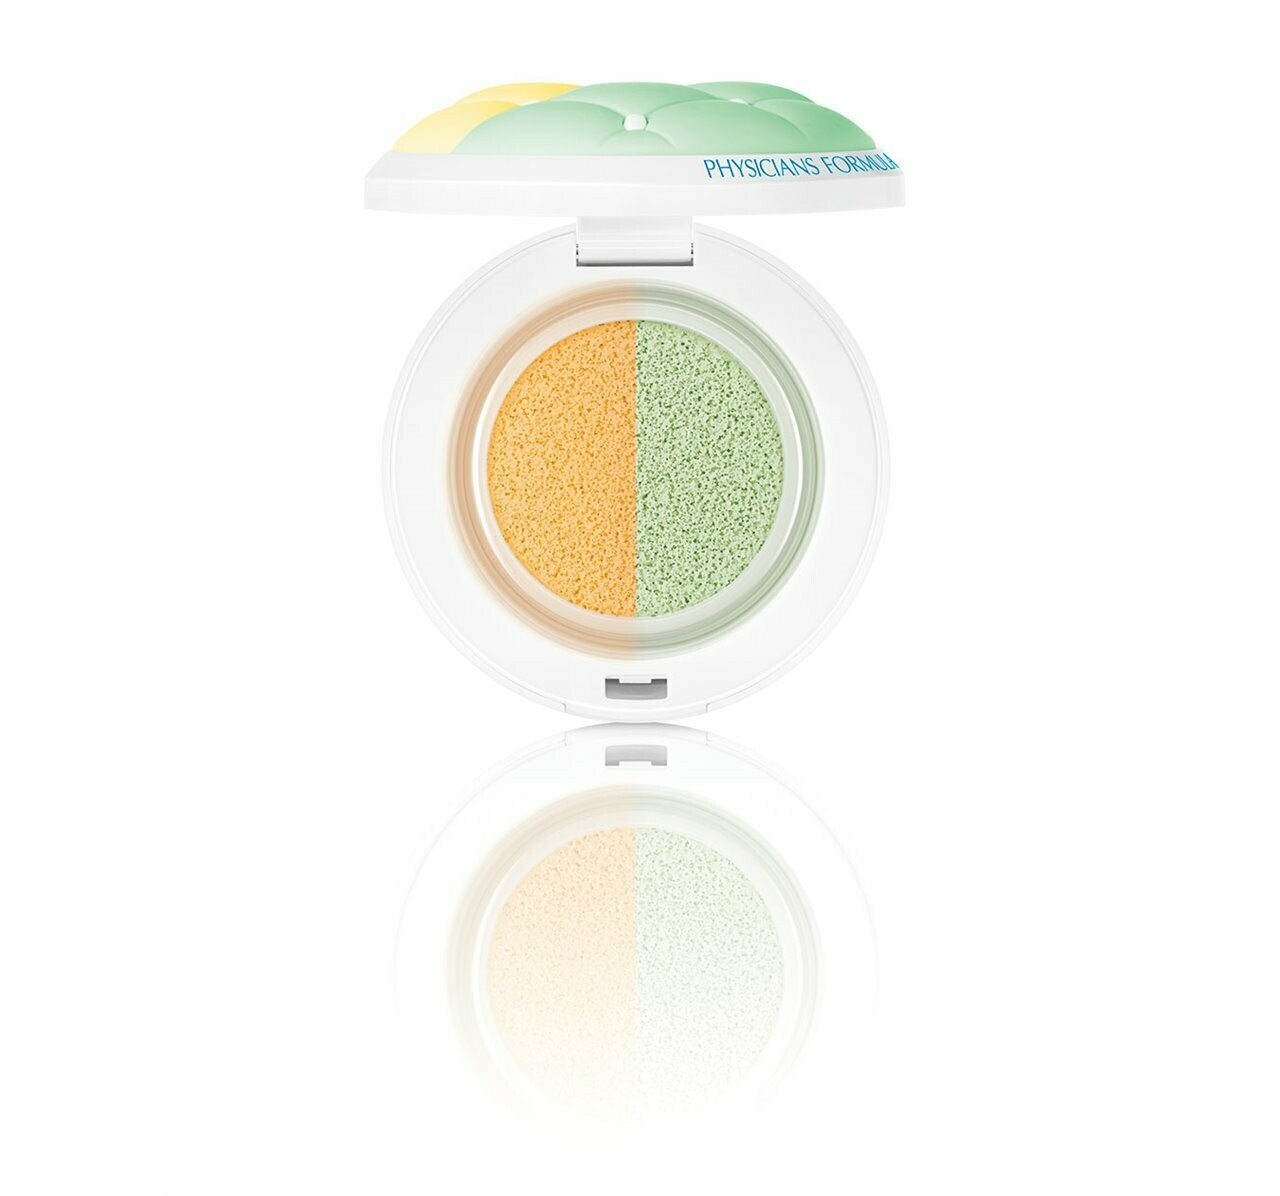 Physicians Formula 170148 Mineral Wear Cushion Corrector + Primer Duo